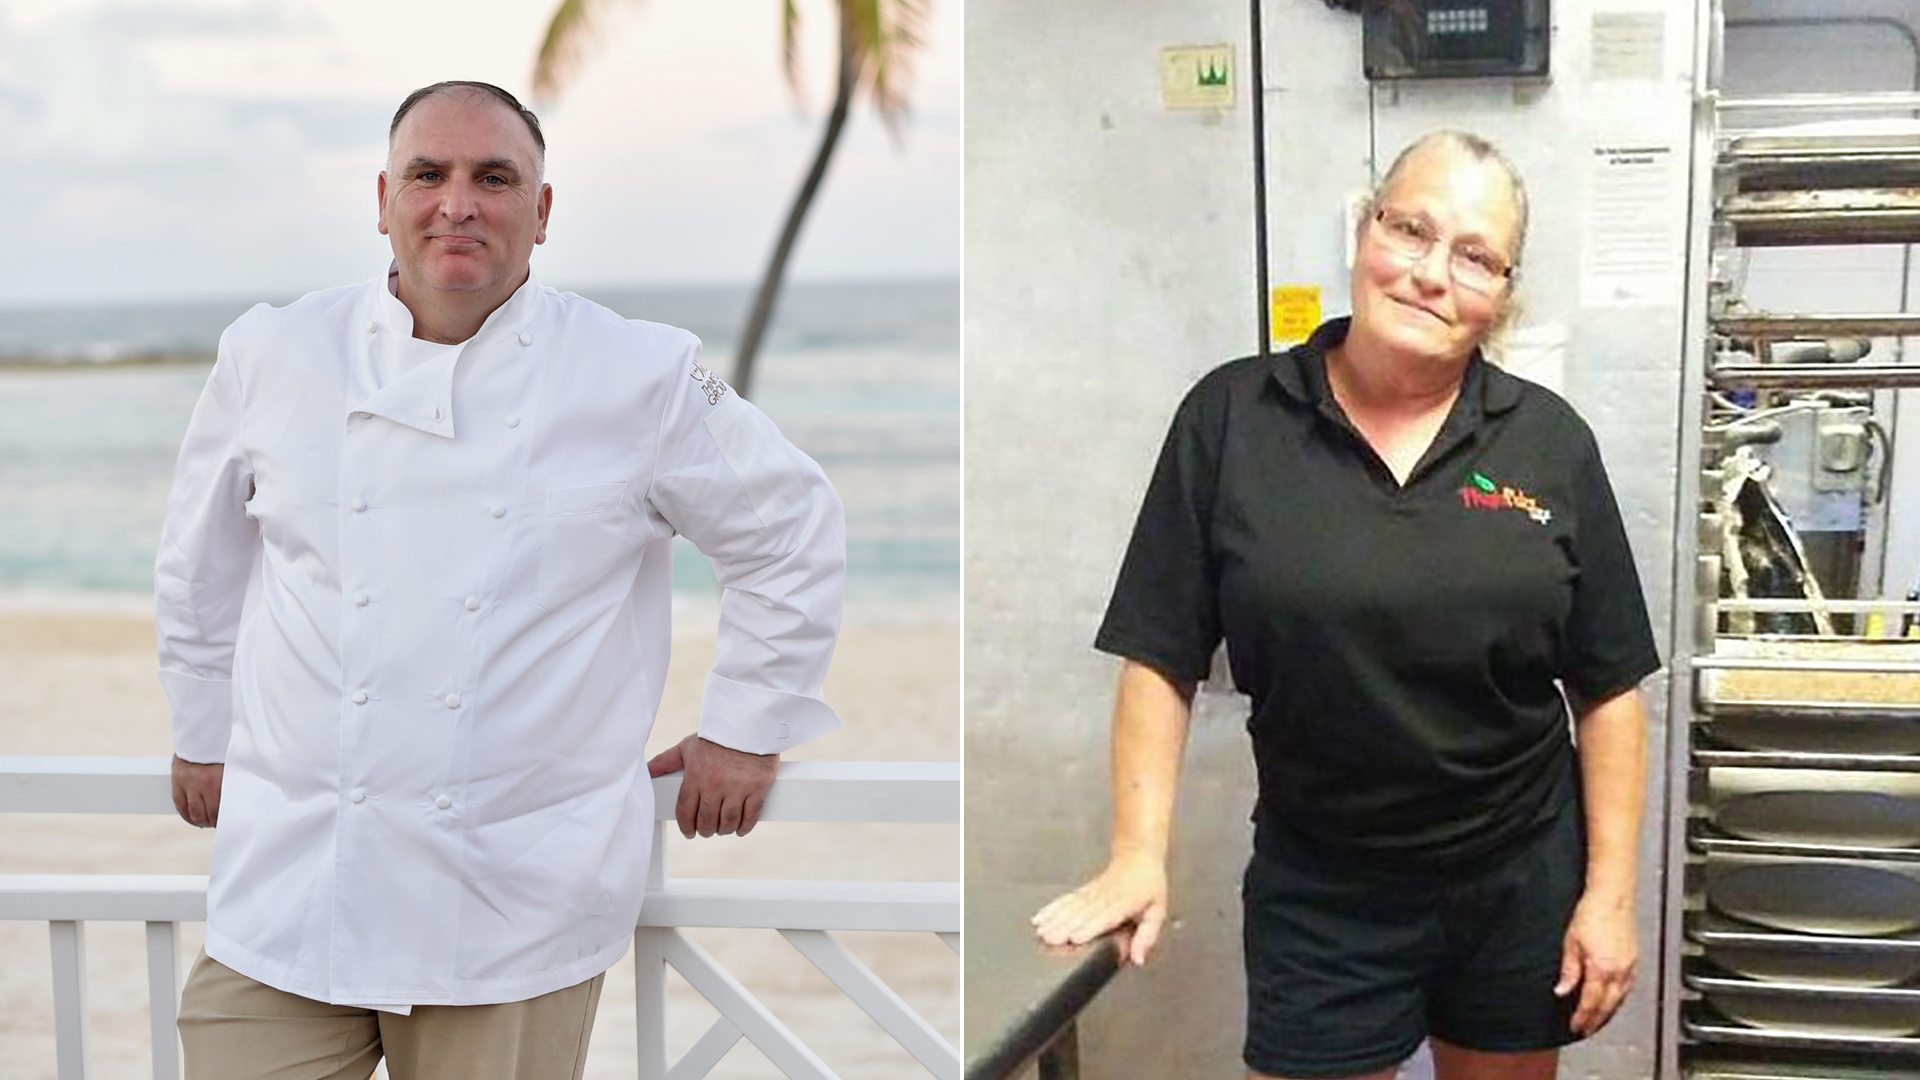 Chef Jose Andres, left, and Bonnie Kimball, right, are seen in photos from Getty Images and CNN Wire.